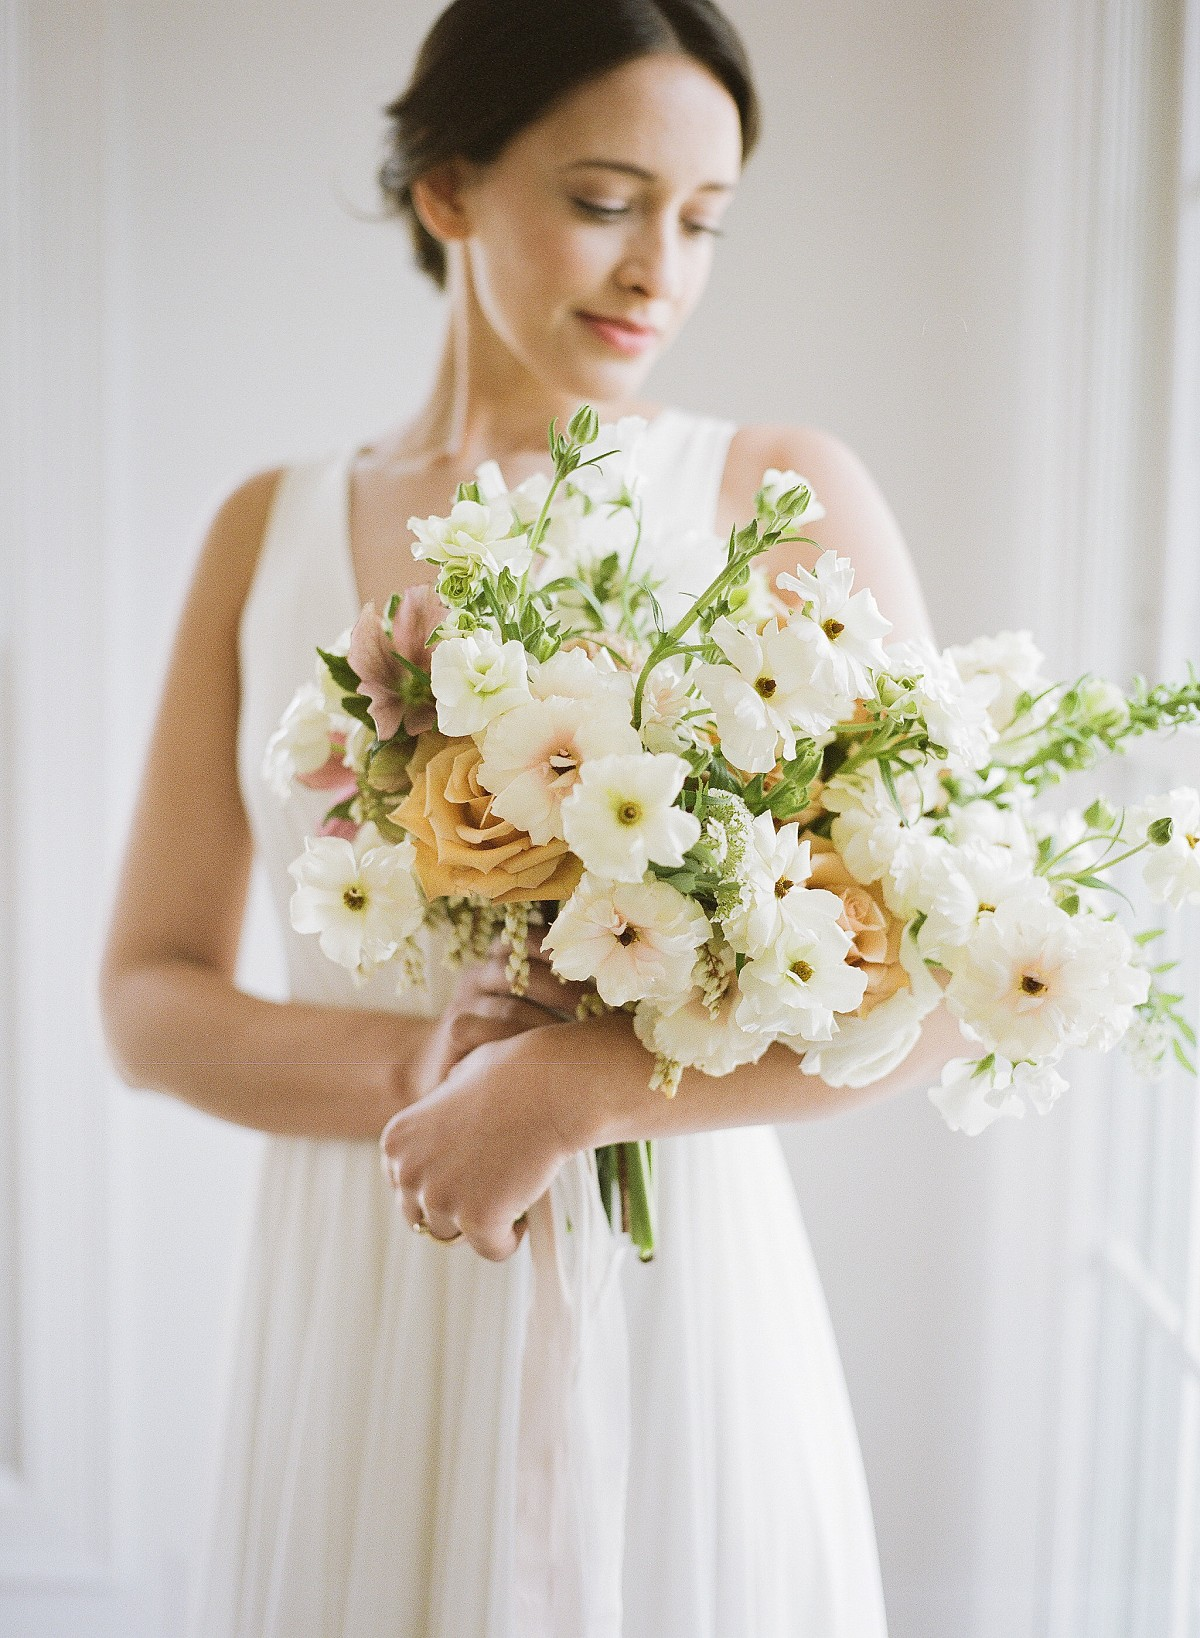 Rustic yet Sophisticated Bridal Session in the Hamptons